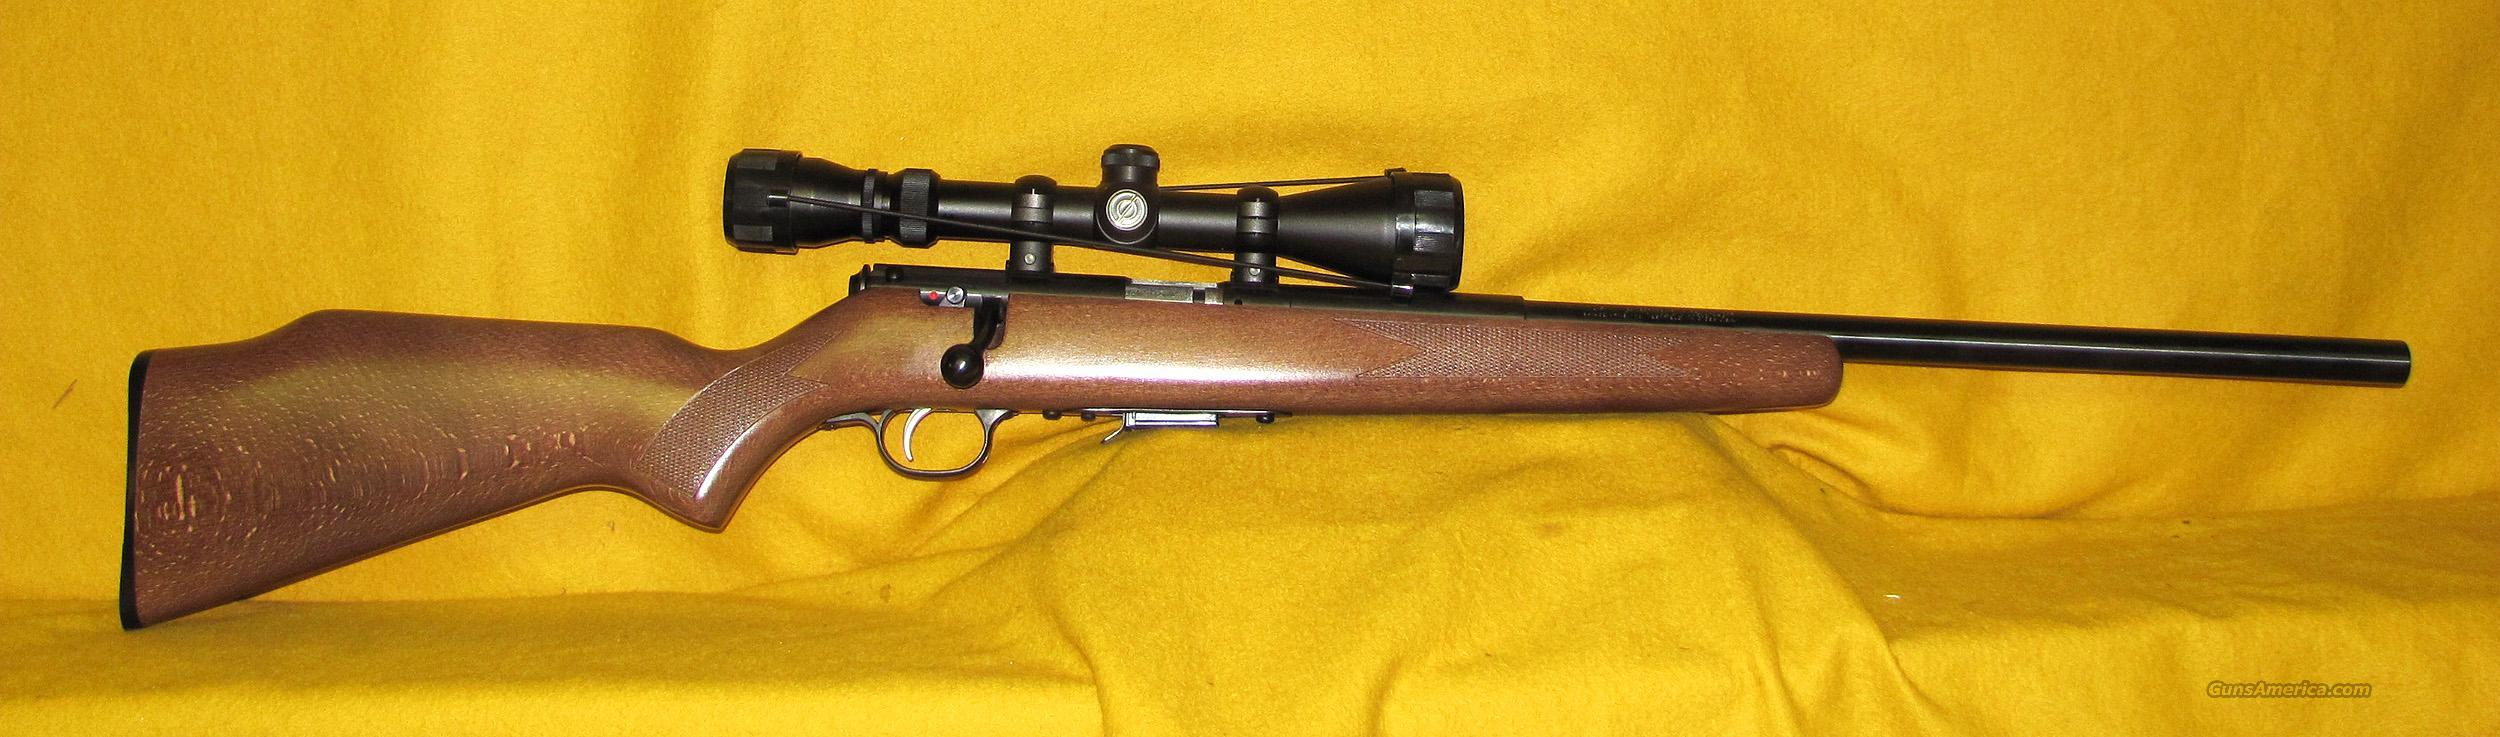 SAVAGE 9317  Guns > Rifles > Savage Rifles > Standard Bolt Action > Sporting